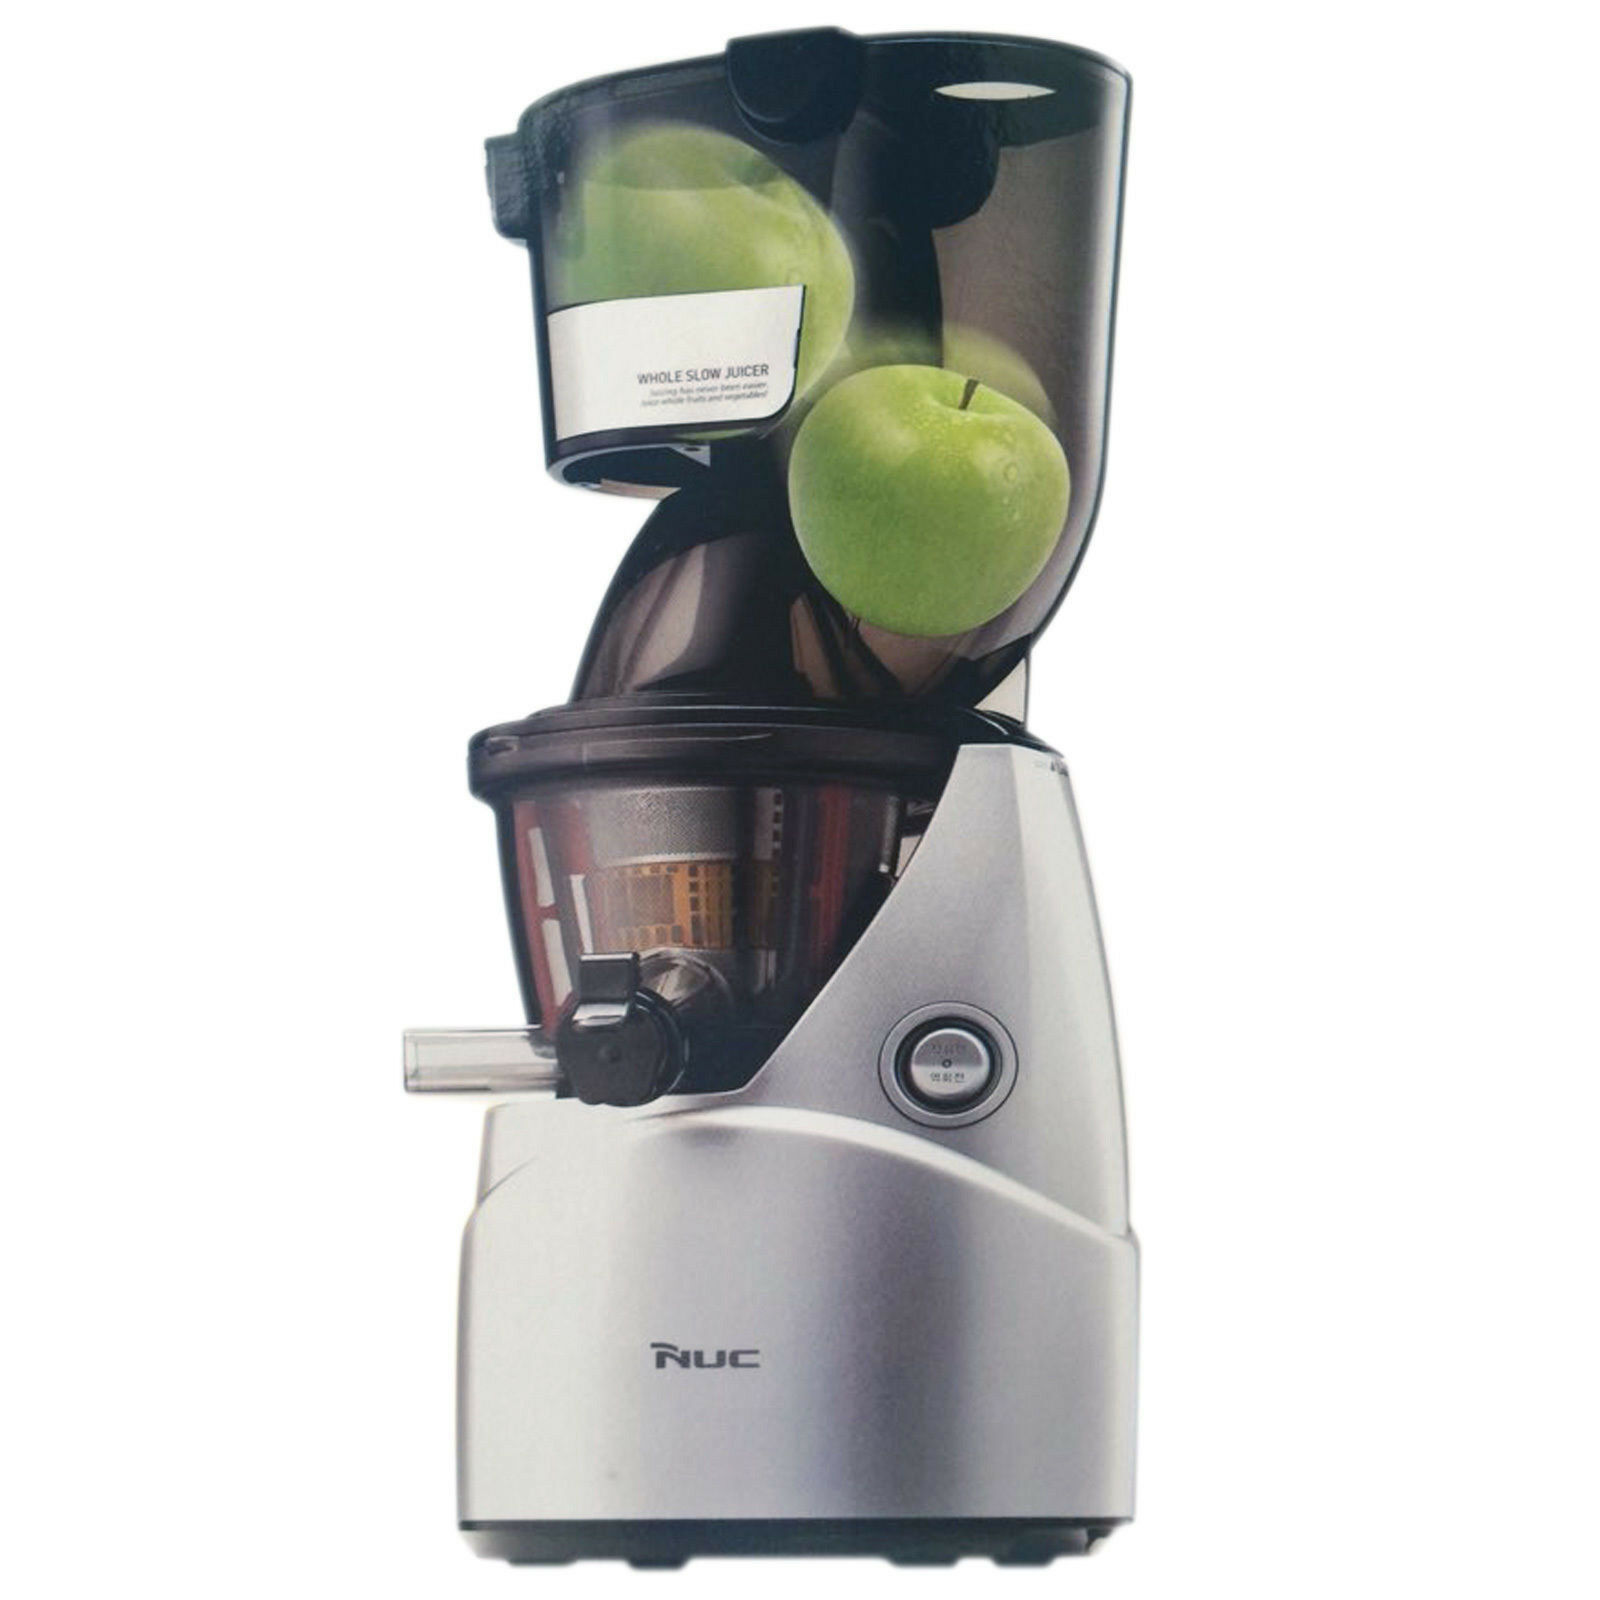 NEW NUC Kuvings KJ-623S Whole Mouth Slow Juicer Fruit Juice Extractor (B6000S)